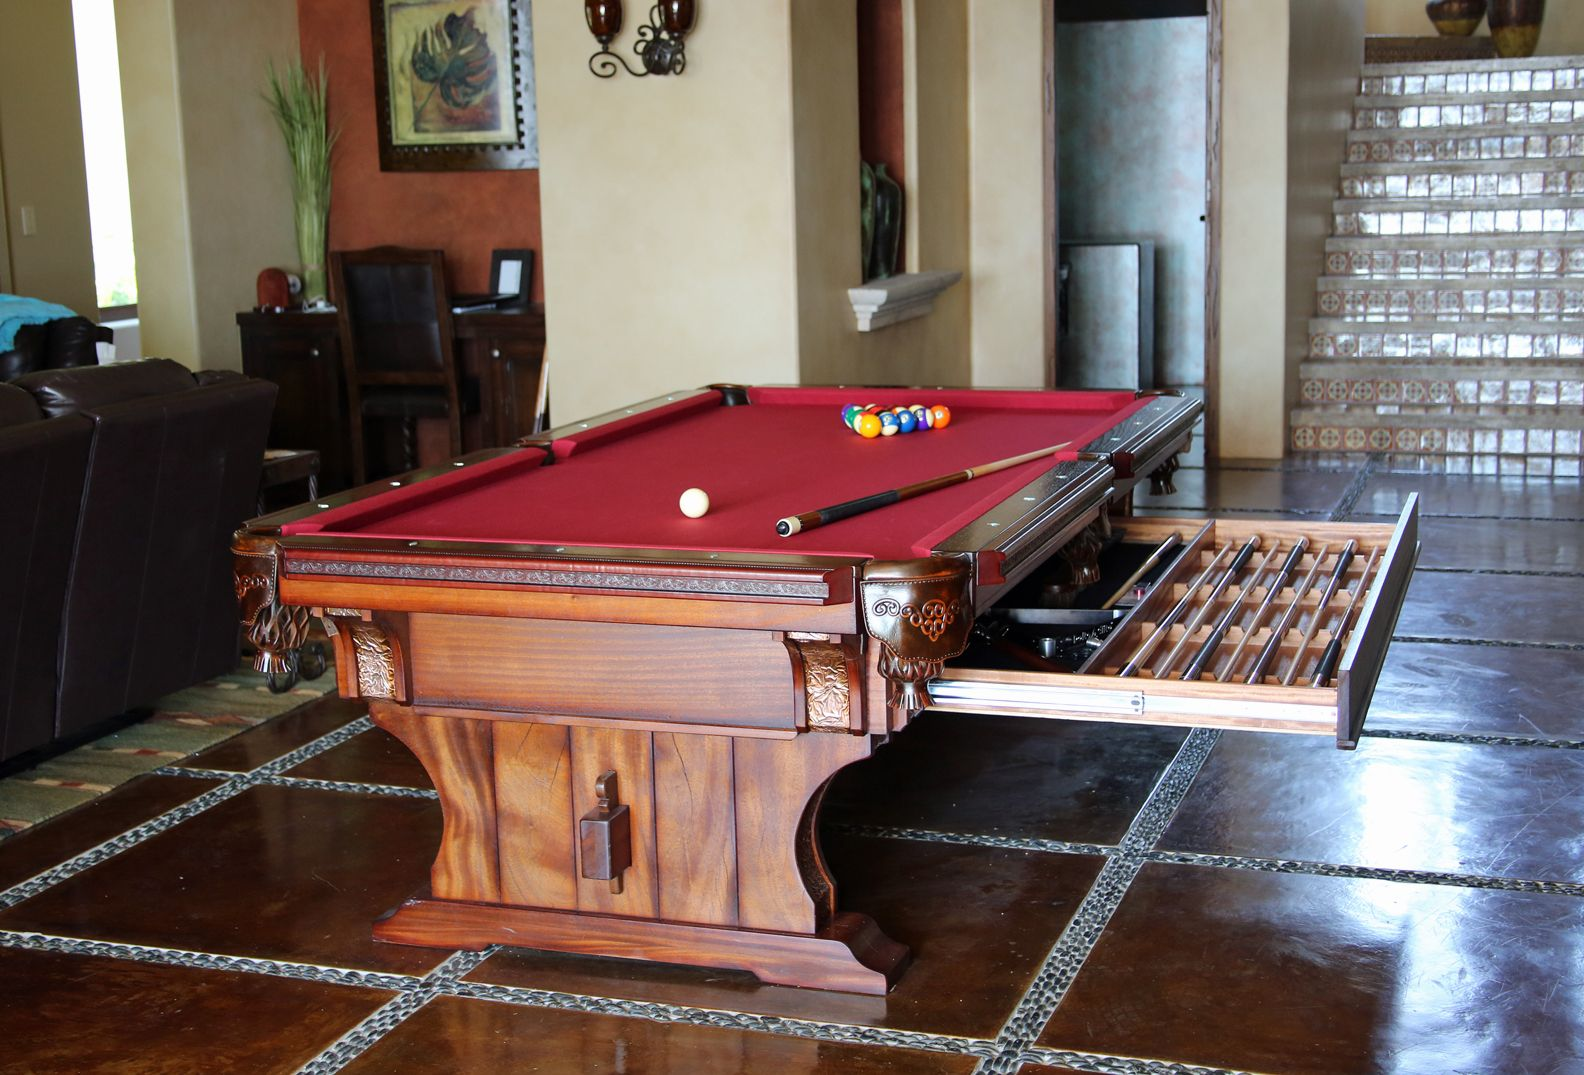 Cabo Pool Table by designer Tim McClellan. made from